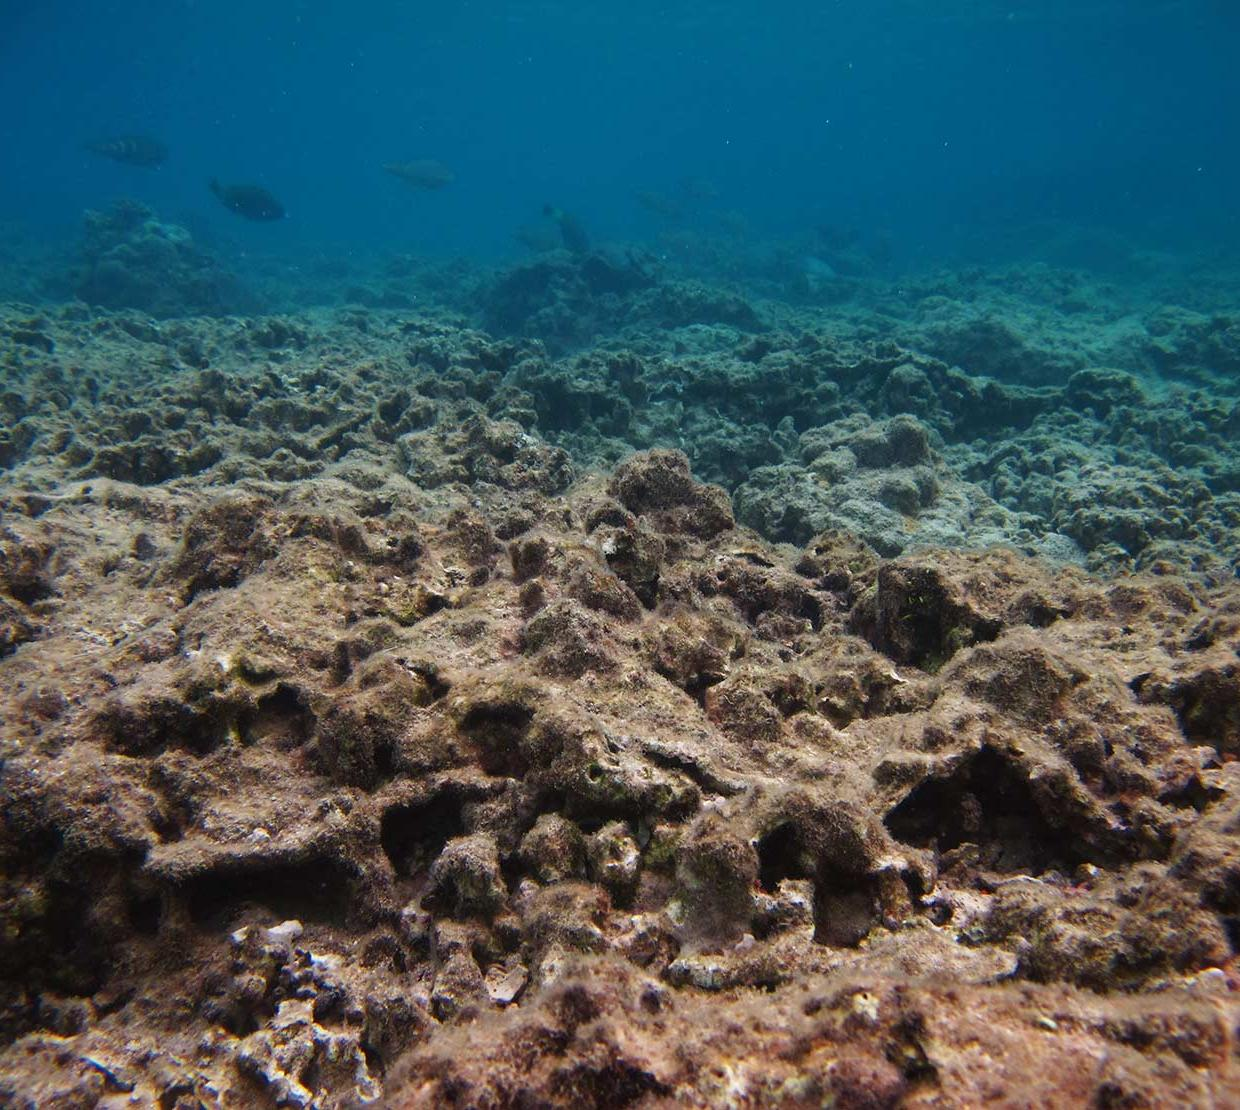 coral at bottom floor of shallow ocean